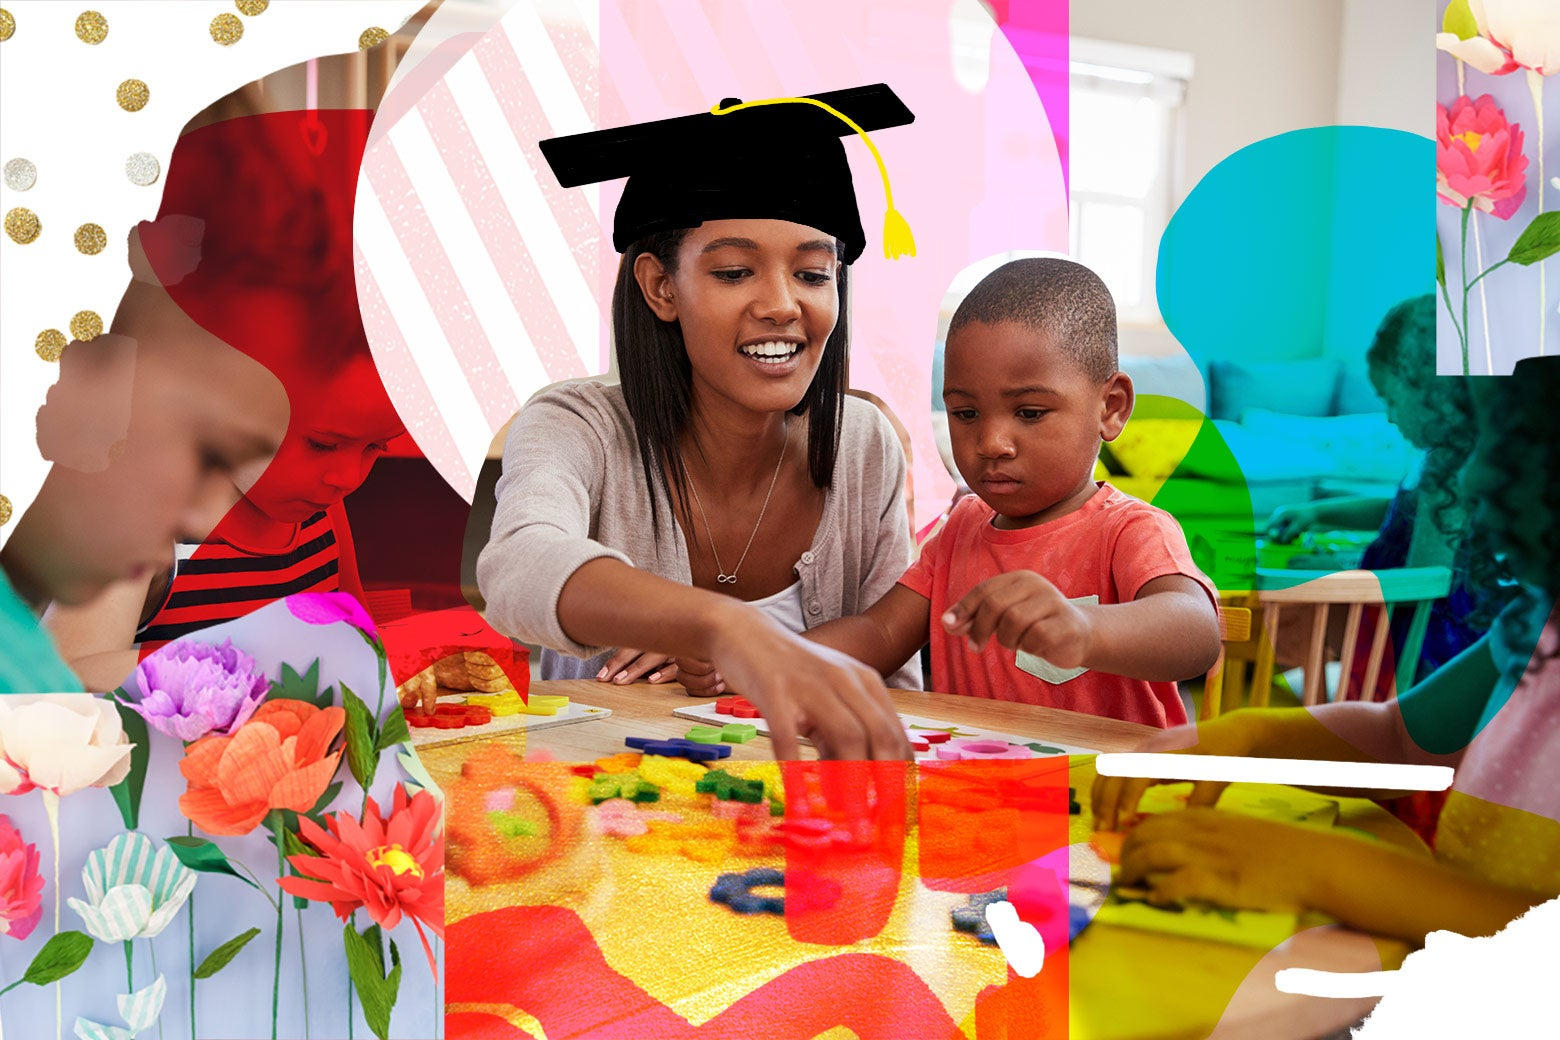 Photo illustration: A stock image of an early childhood education professional at play with students. There is a graduate's cap edited on to the teacher's head.